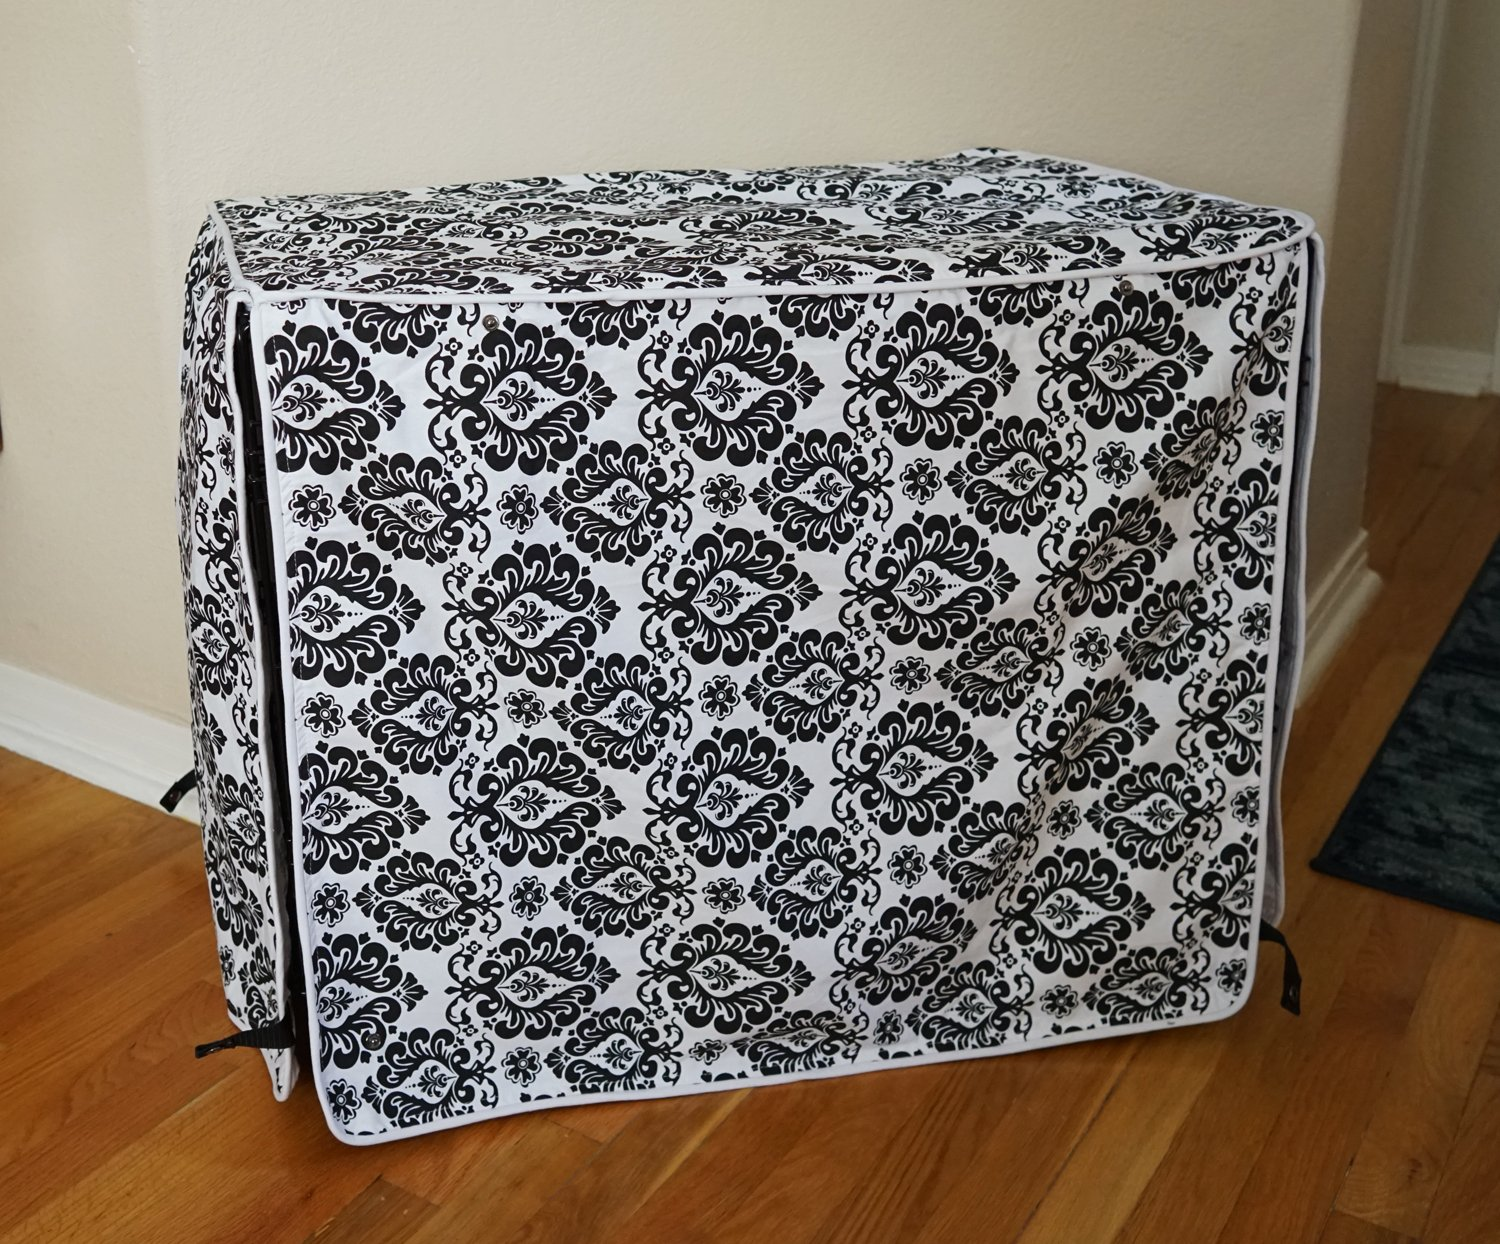 Black & White Damask Design Dog Pet Wire Kennel Crate Cage Cover (Small, Medium, Large, XL, XXL) (SMALL 24x18x21'')